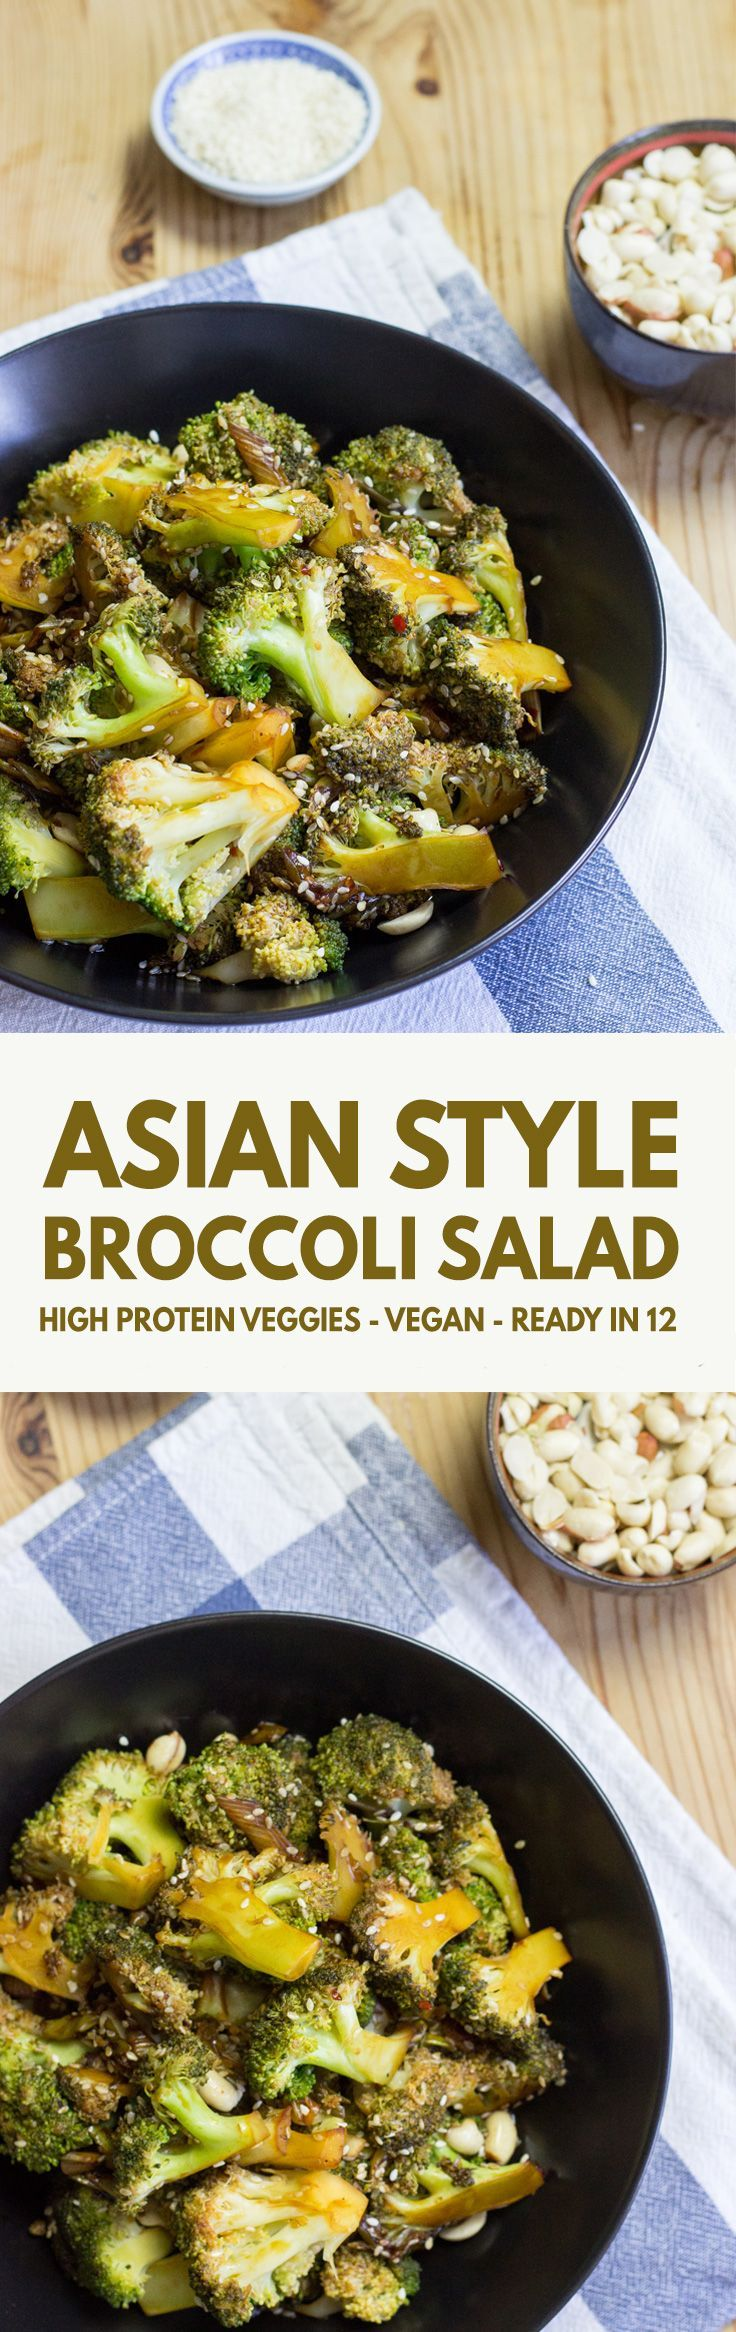 Vegan Broccoli Salad - High in Protein, Low in Carbs - really tasty! | http://hurrythefoodup.com